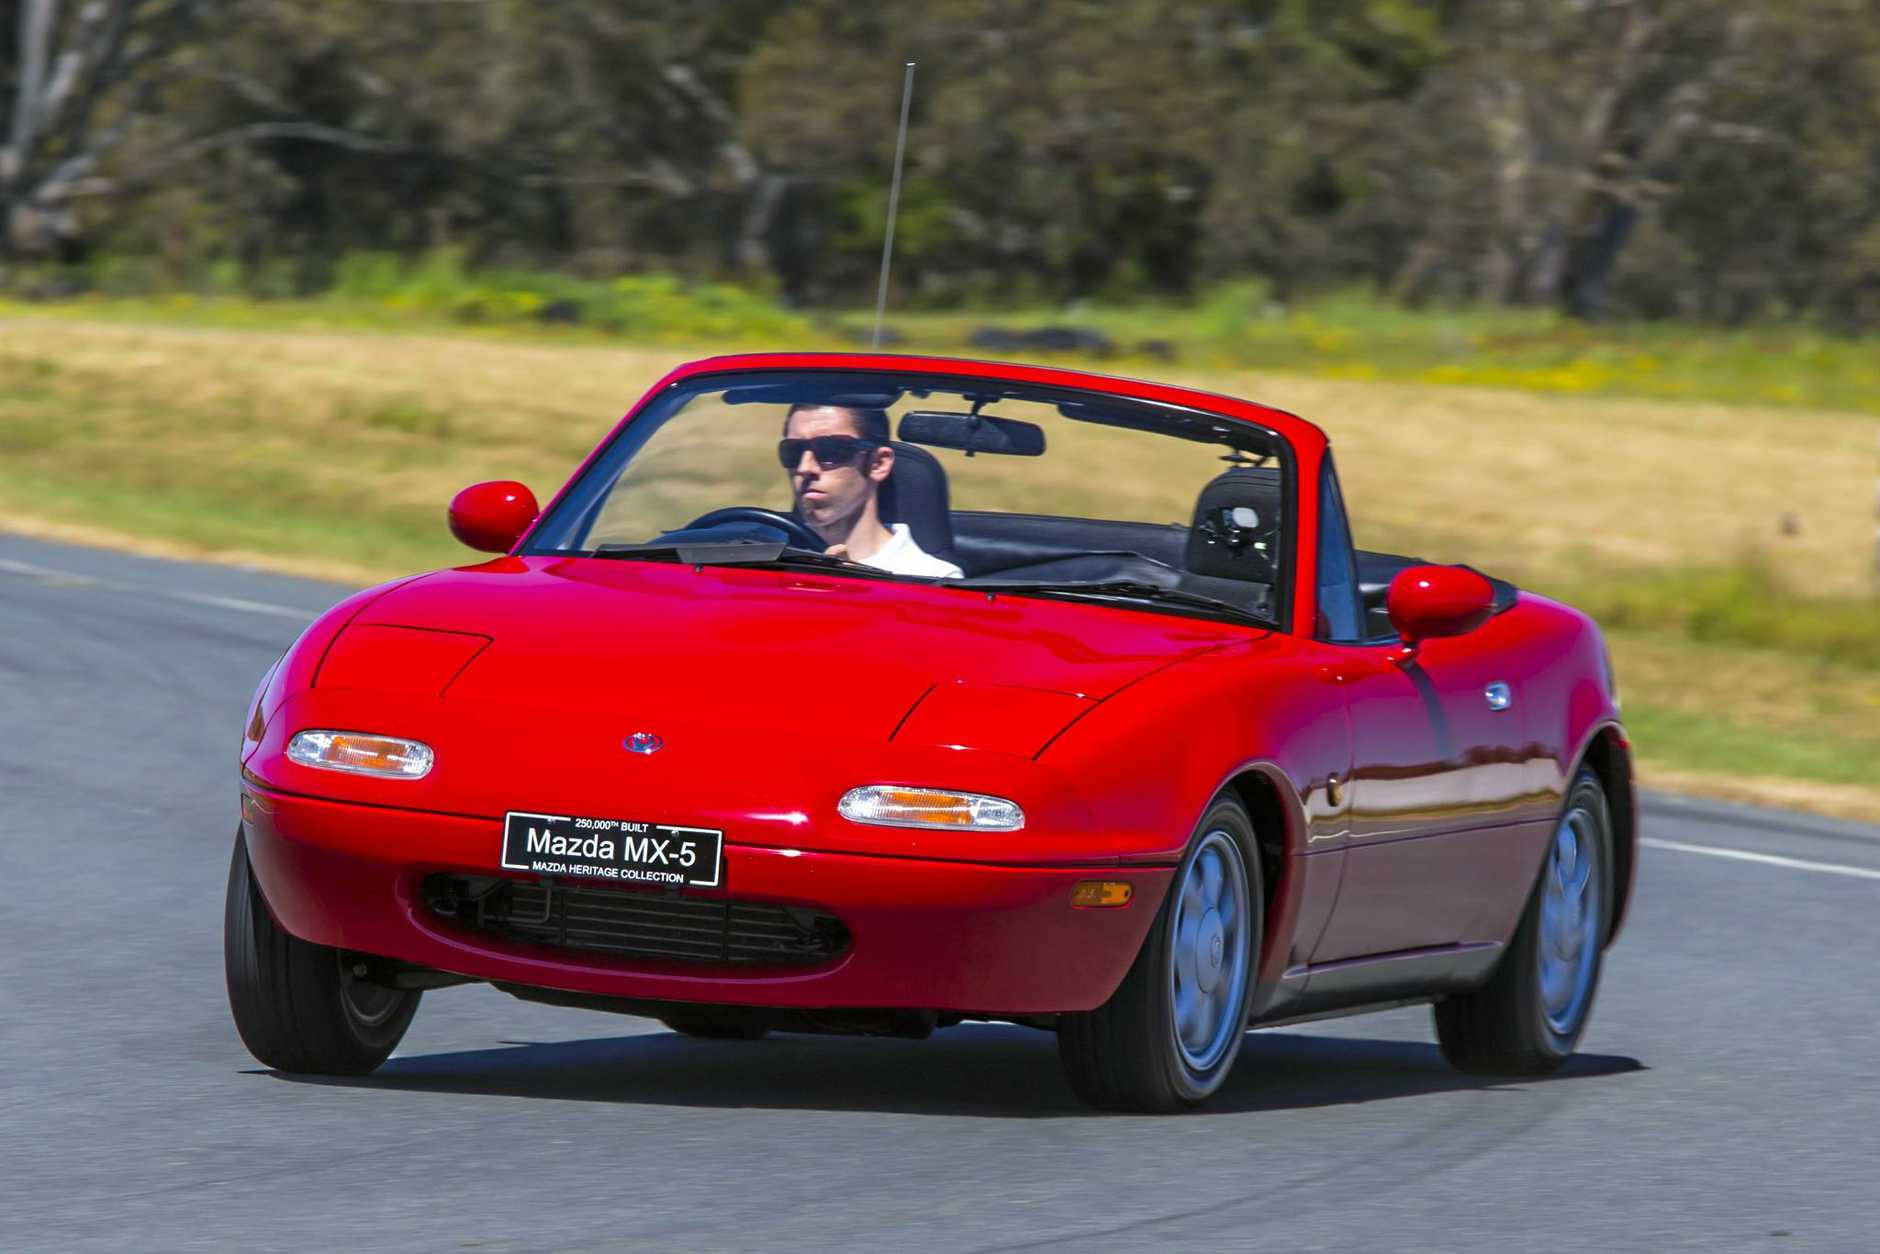 READY FOR FUN? Try a first generation Mazda MX-5; yours for under $7000.